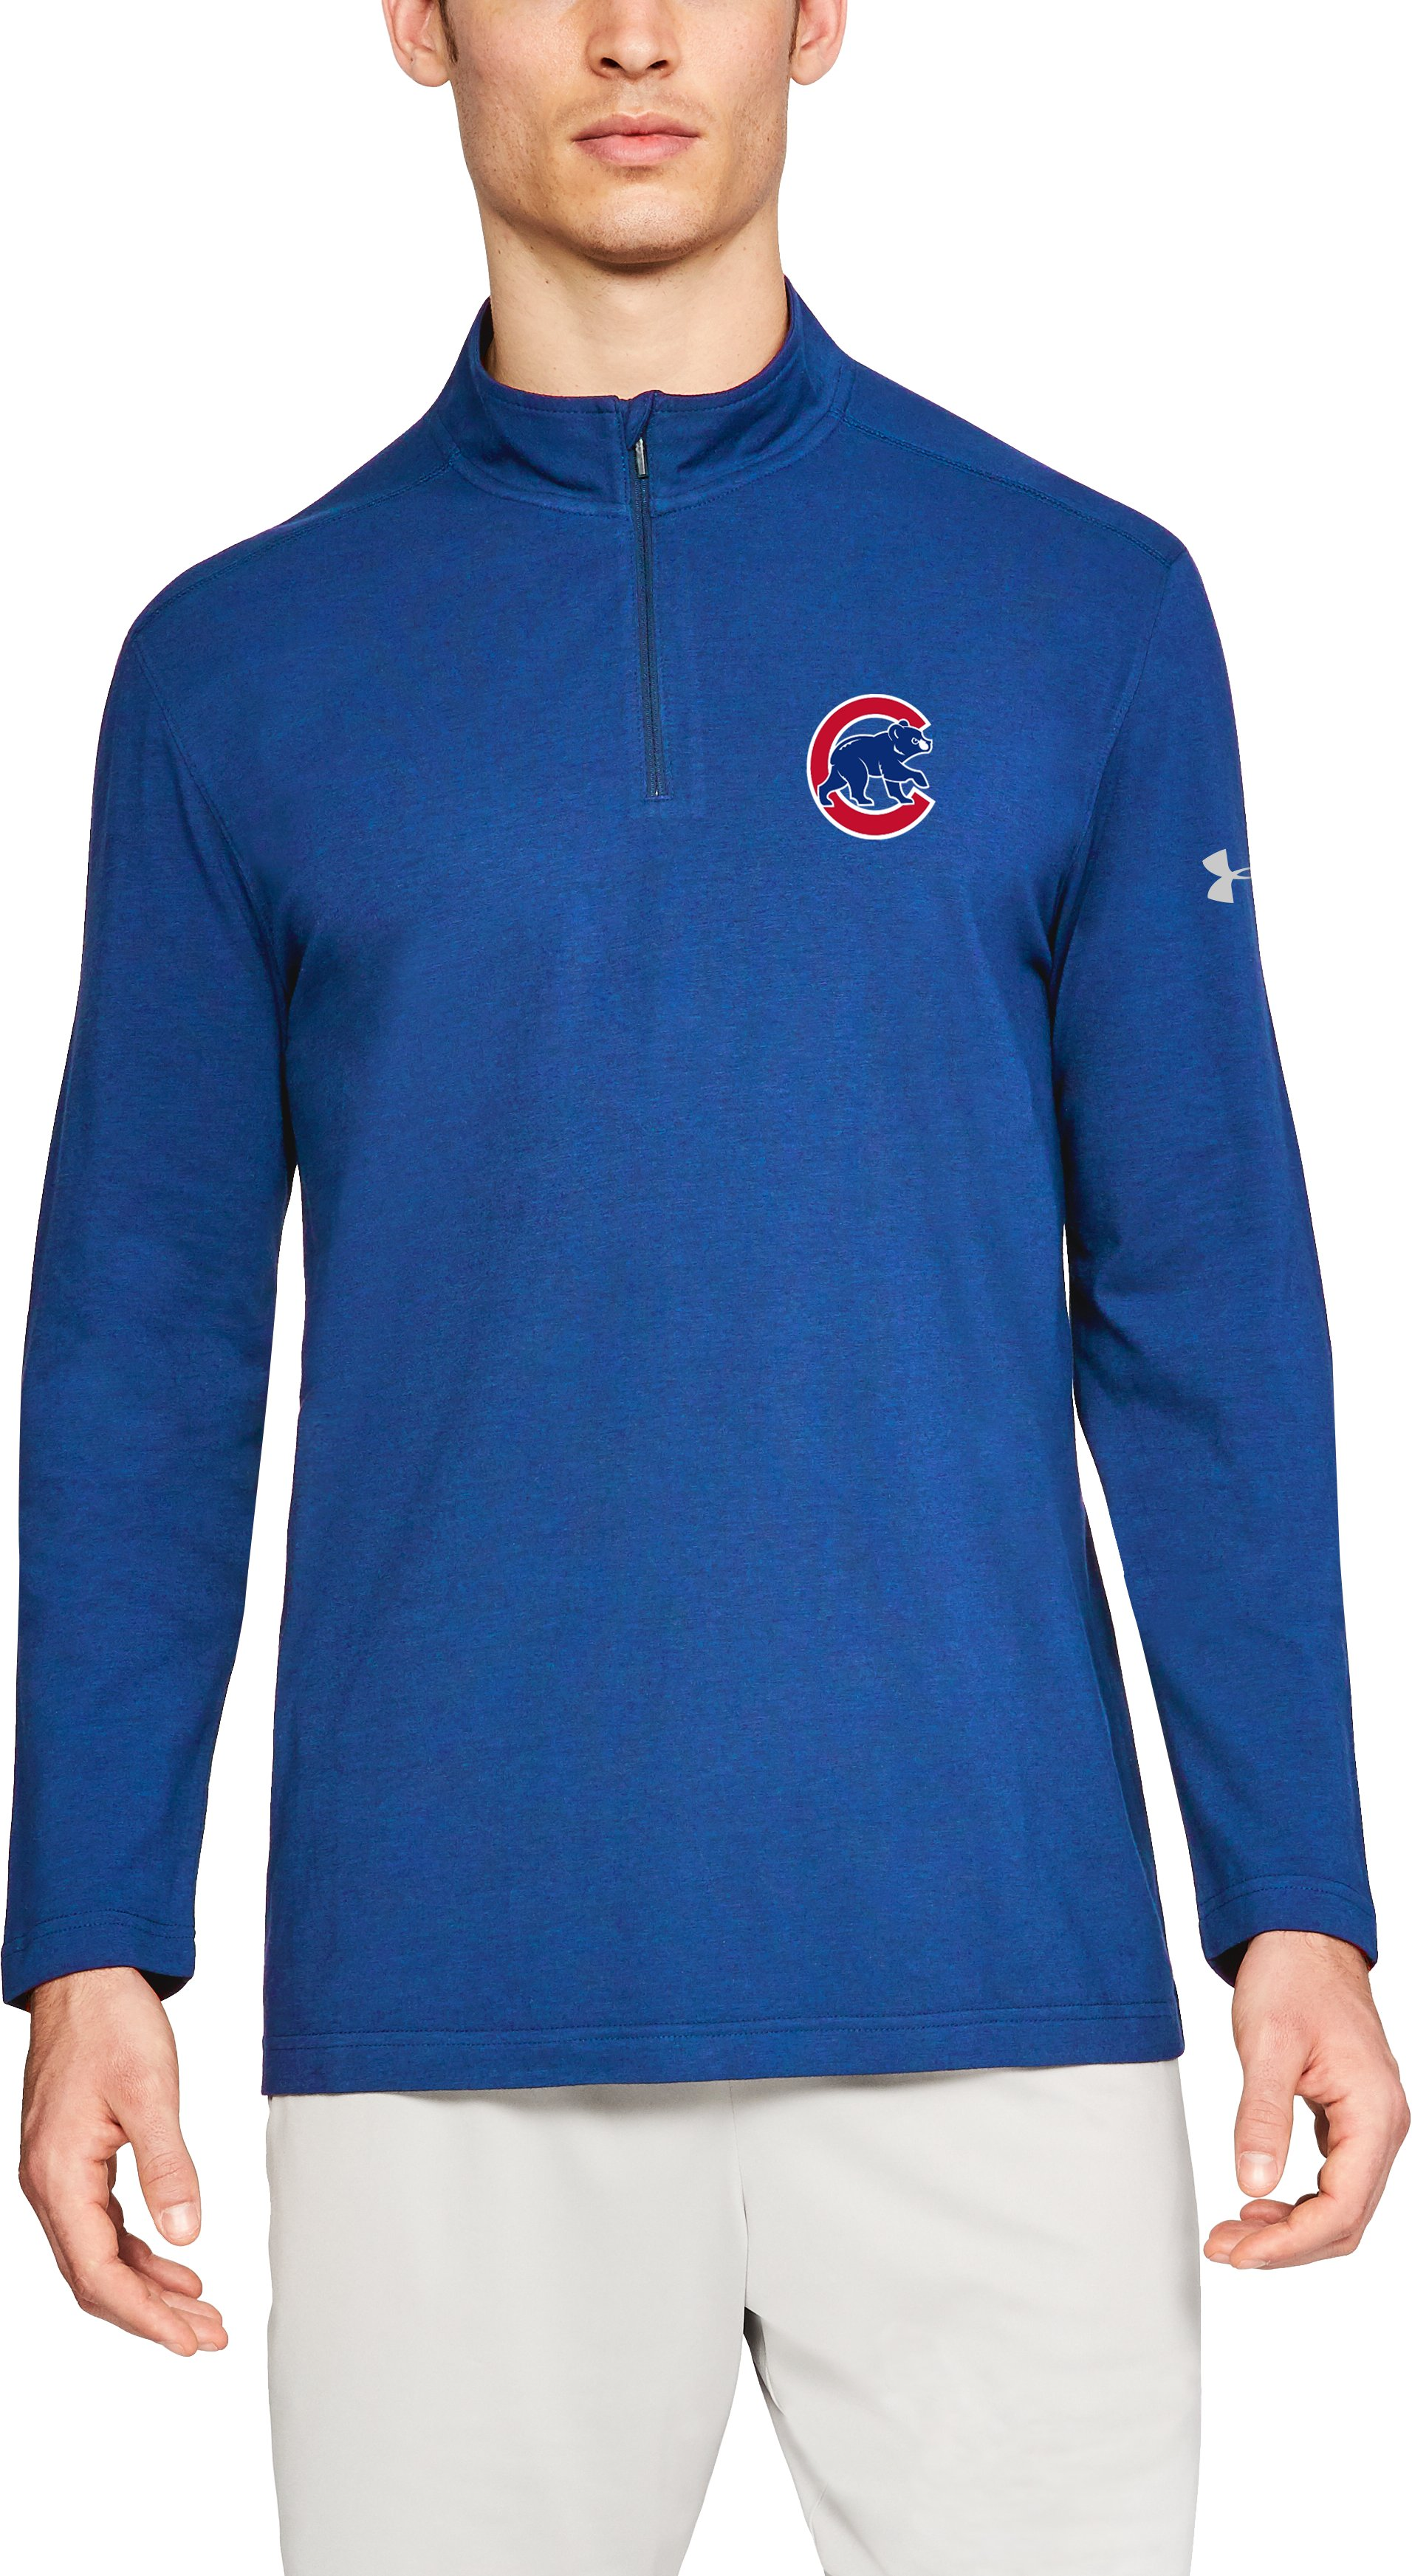 Men's MLB UA Chest ¼ Zip, MLB_CHC_Bright Royal, zoomed